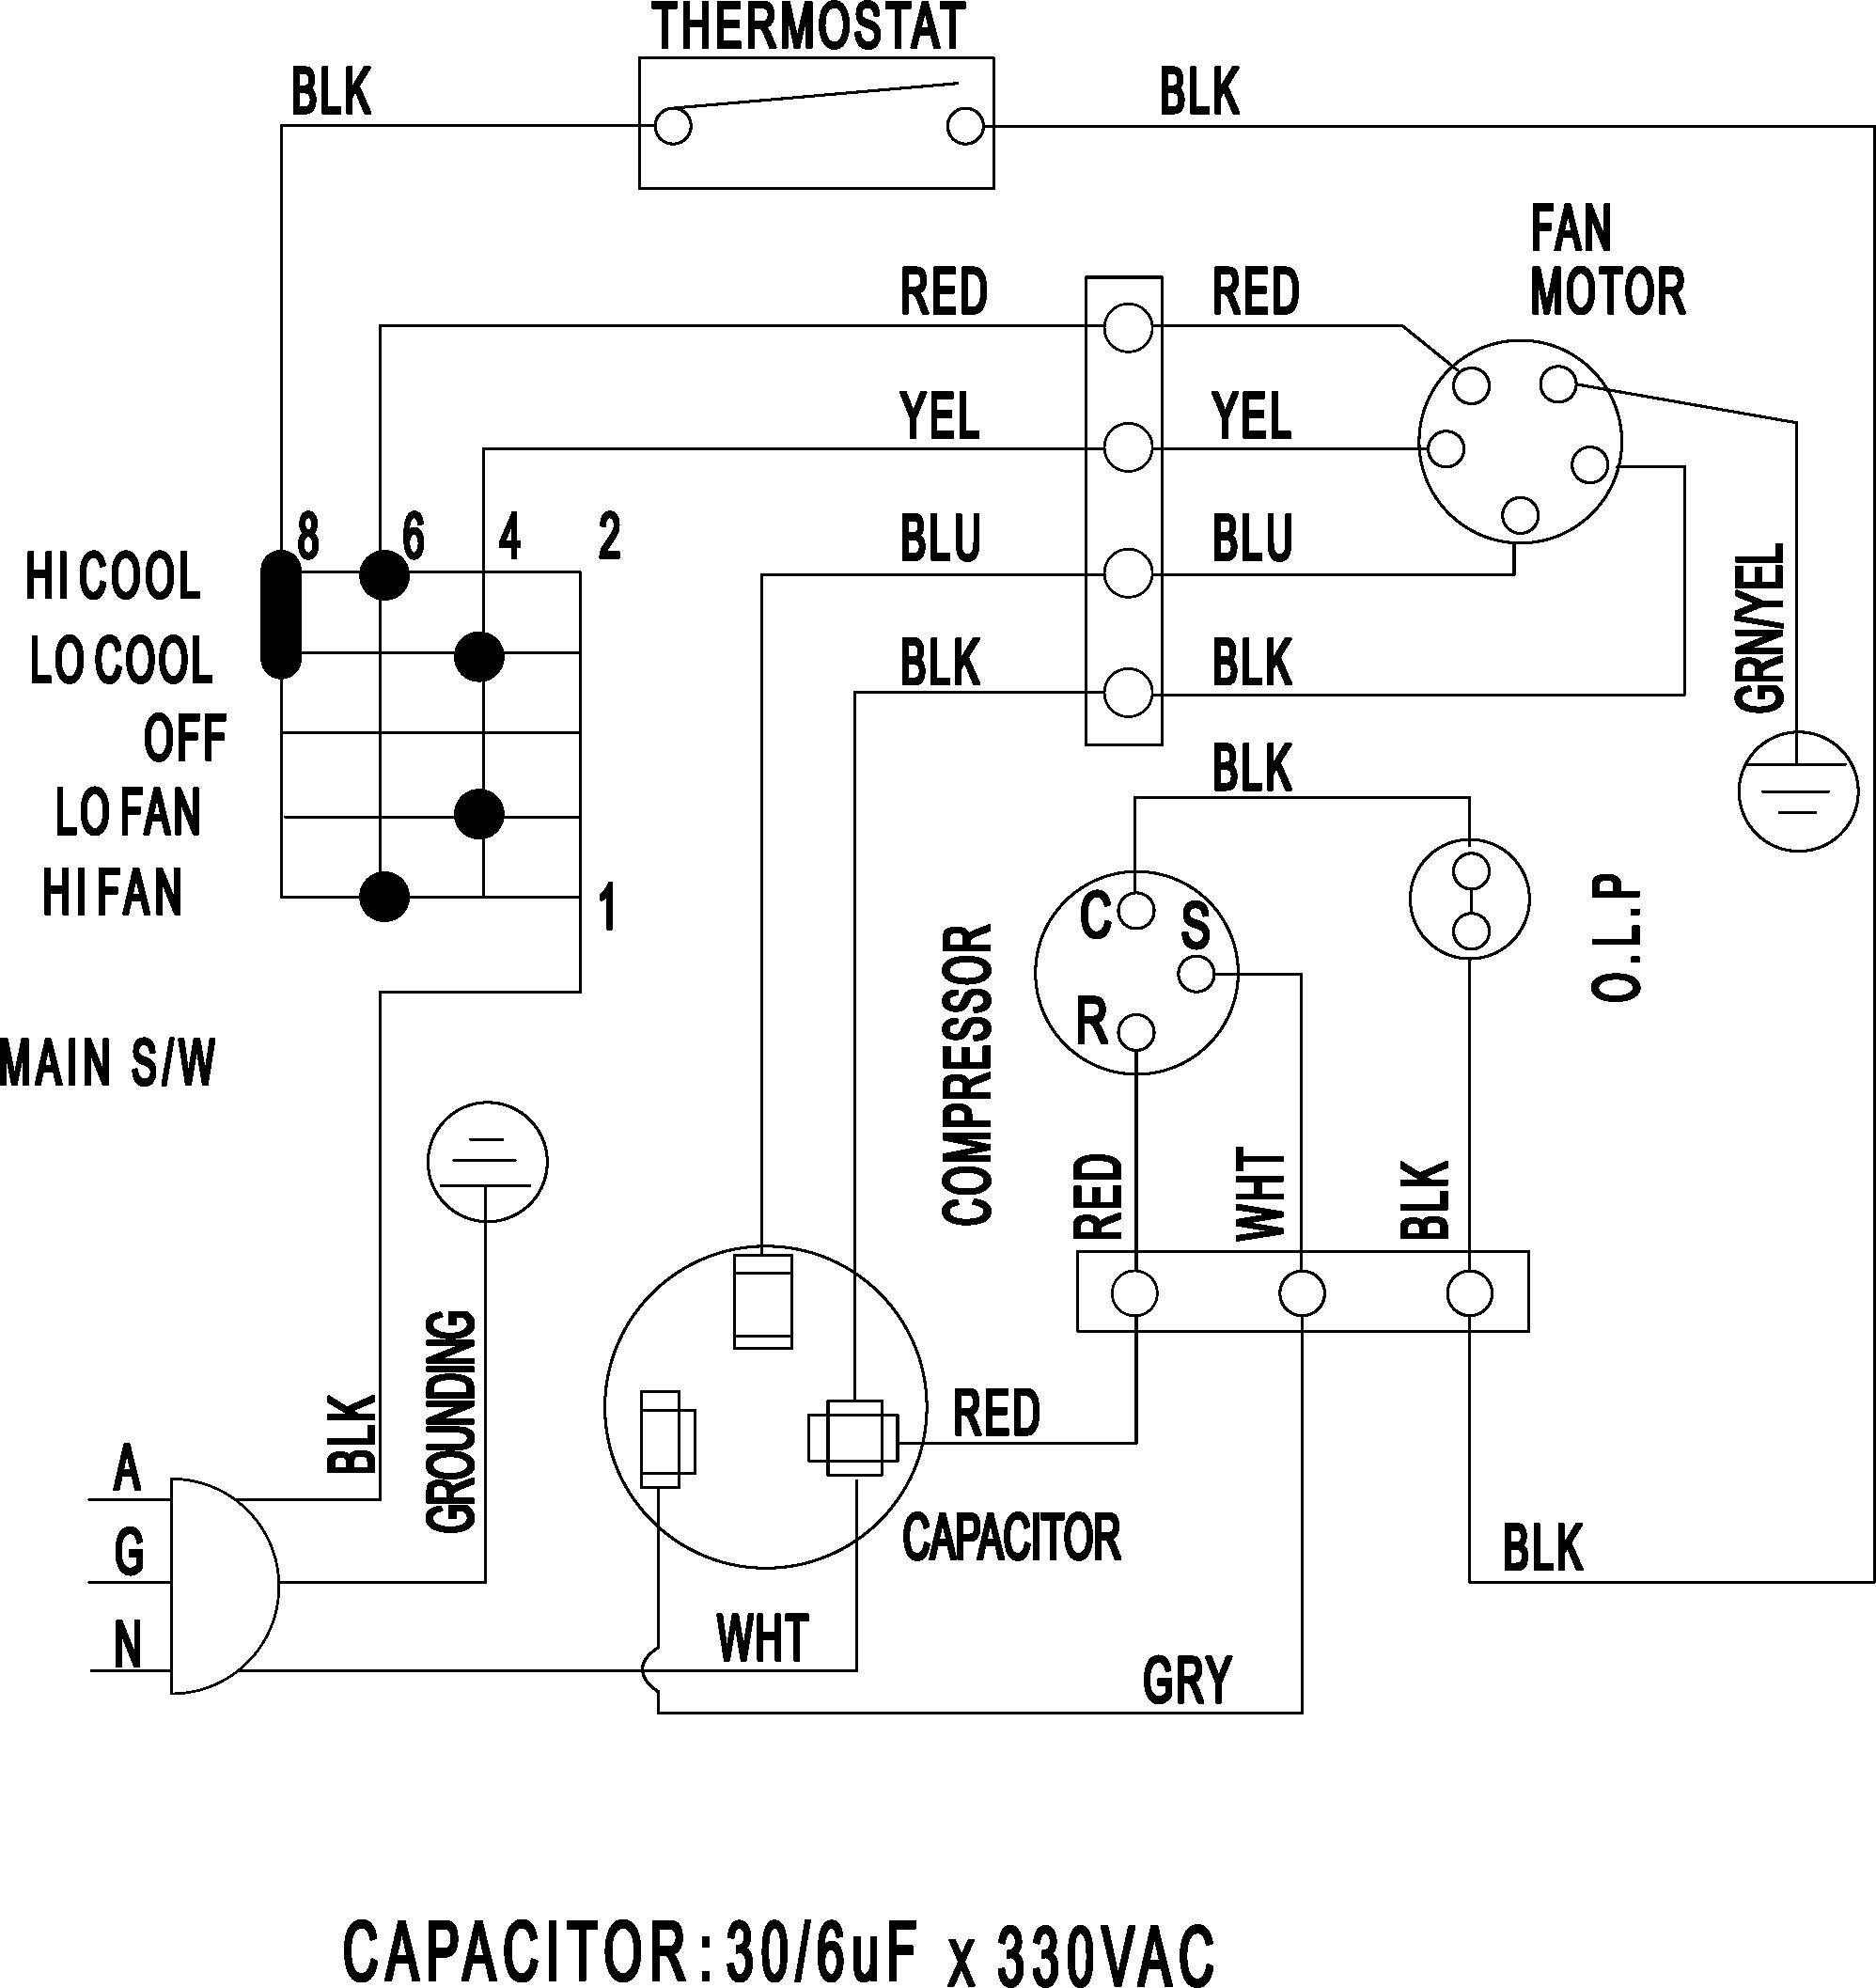 York Motor Wiring Diagram - Wiring Diagram Data Oreo - Genteq Motor Wiring Diagram